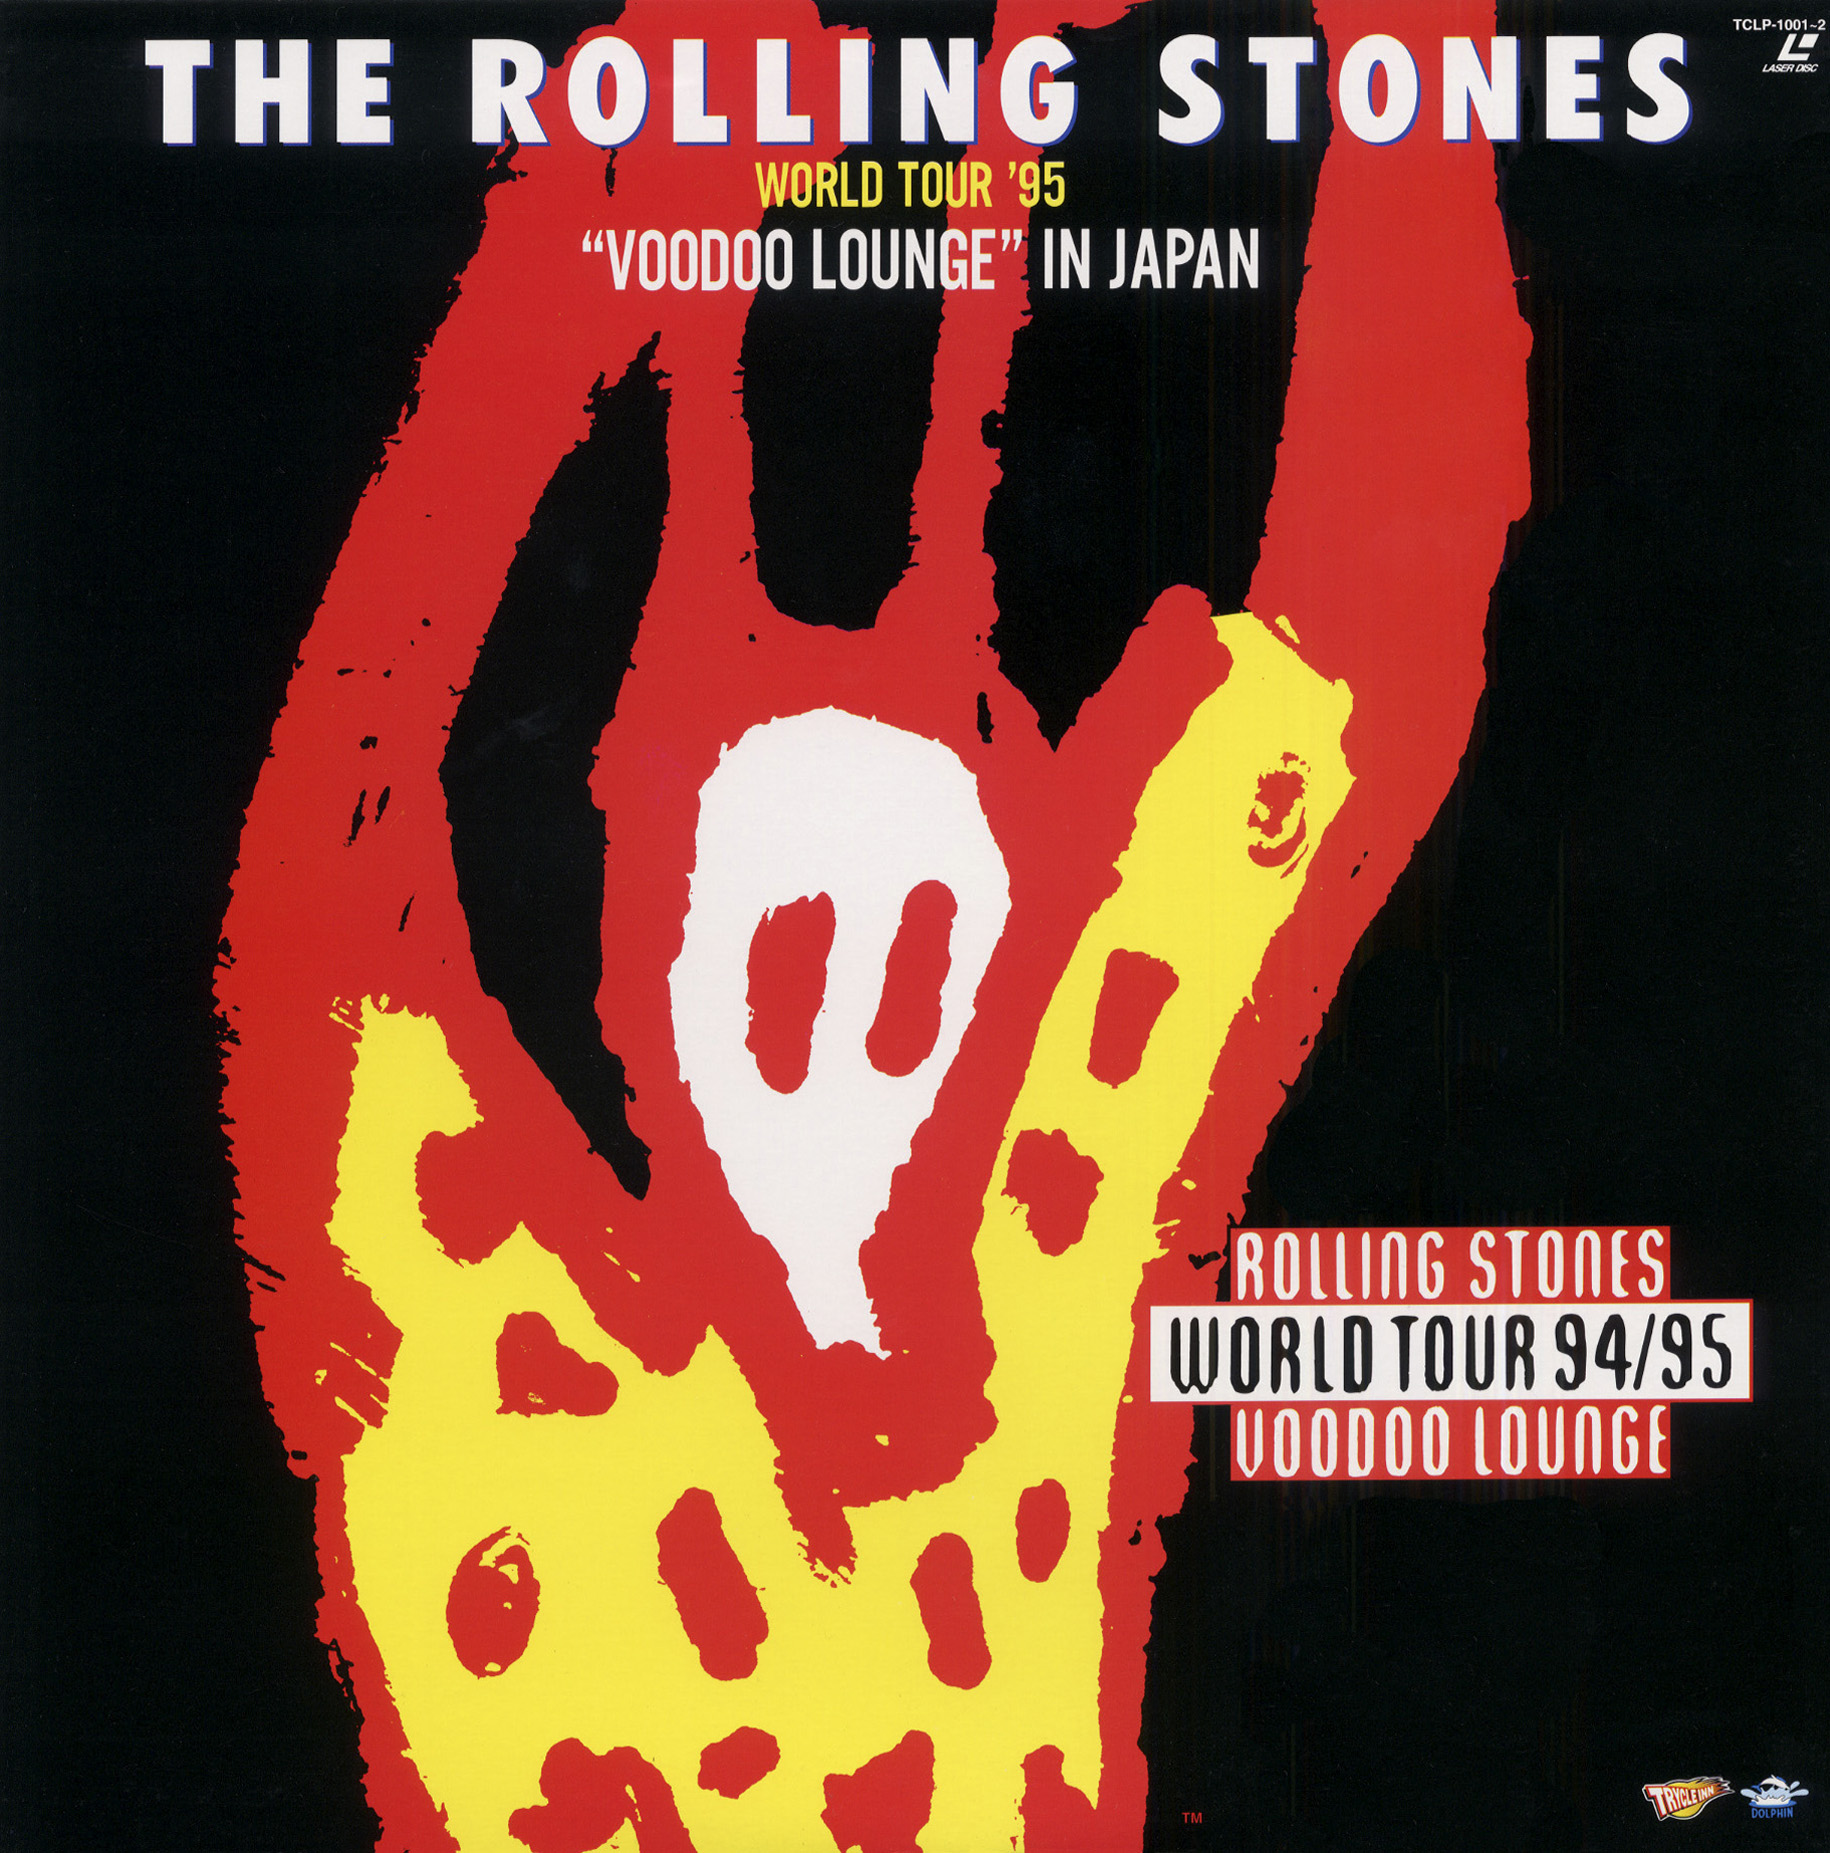 1000+ images about The Rolling Stones Records/Posters on Pinterest.